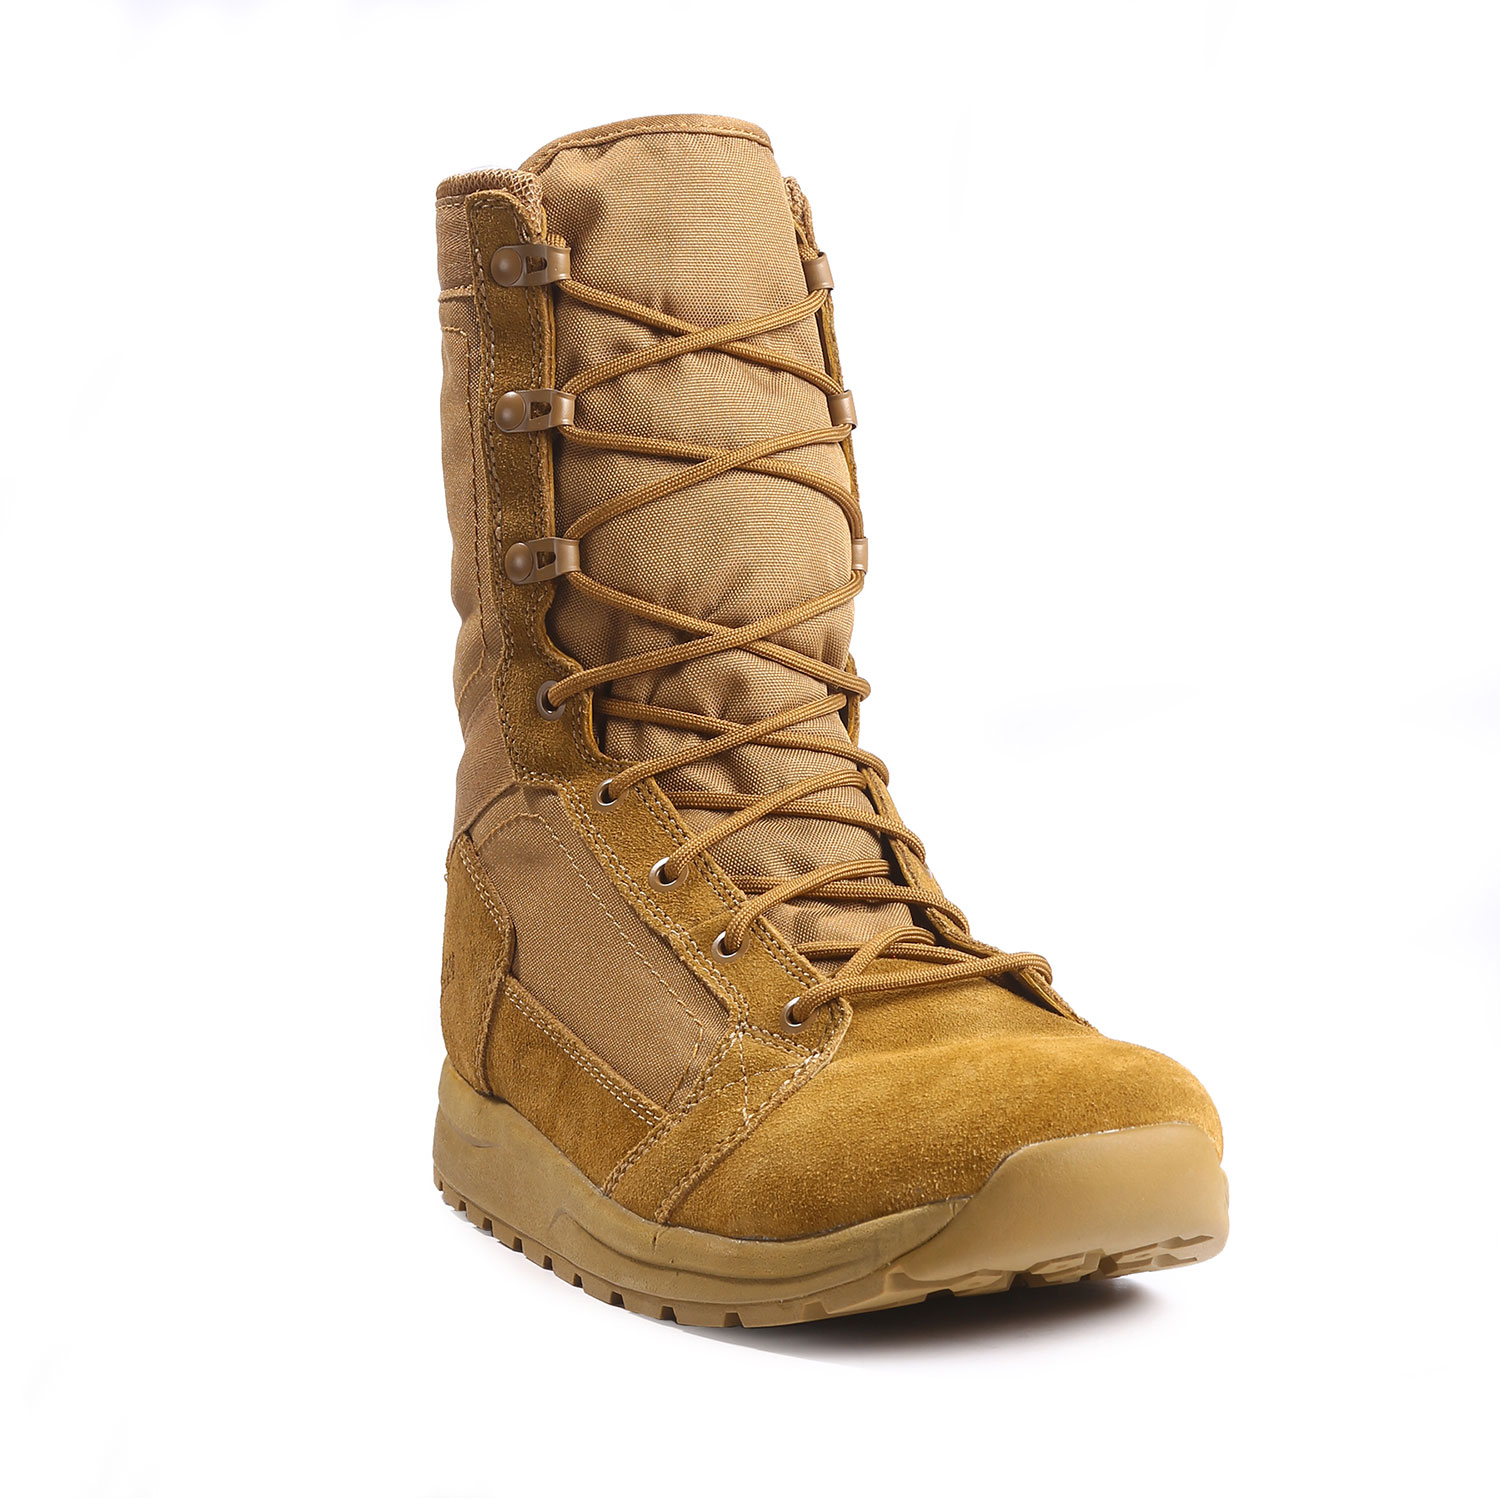 "Danner Tachyon Coyote 8"" Duty Boot"